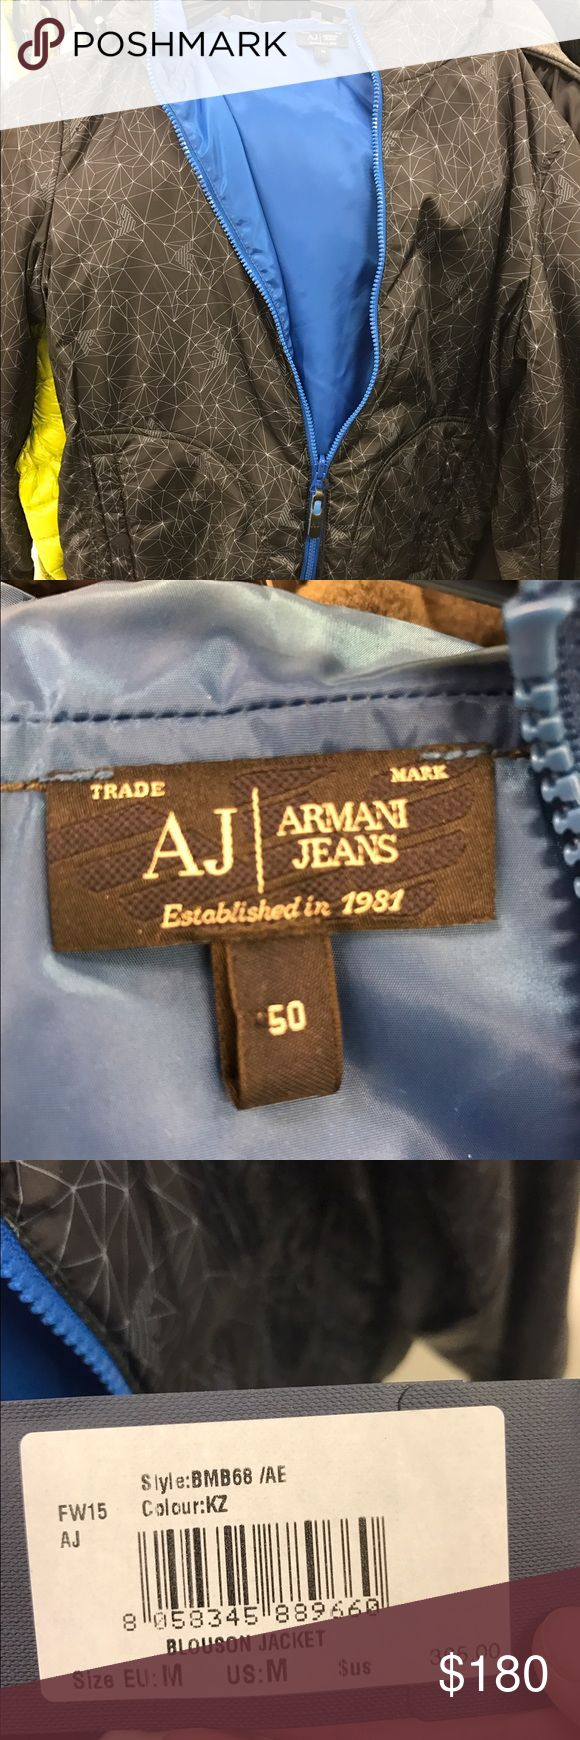 NWT Armani Jeans reversible jacket Authentic Armani jeans reversible jacket size medium retails for $365 Armani Jeans Jackets & Coats Puffers